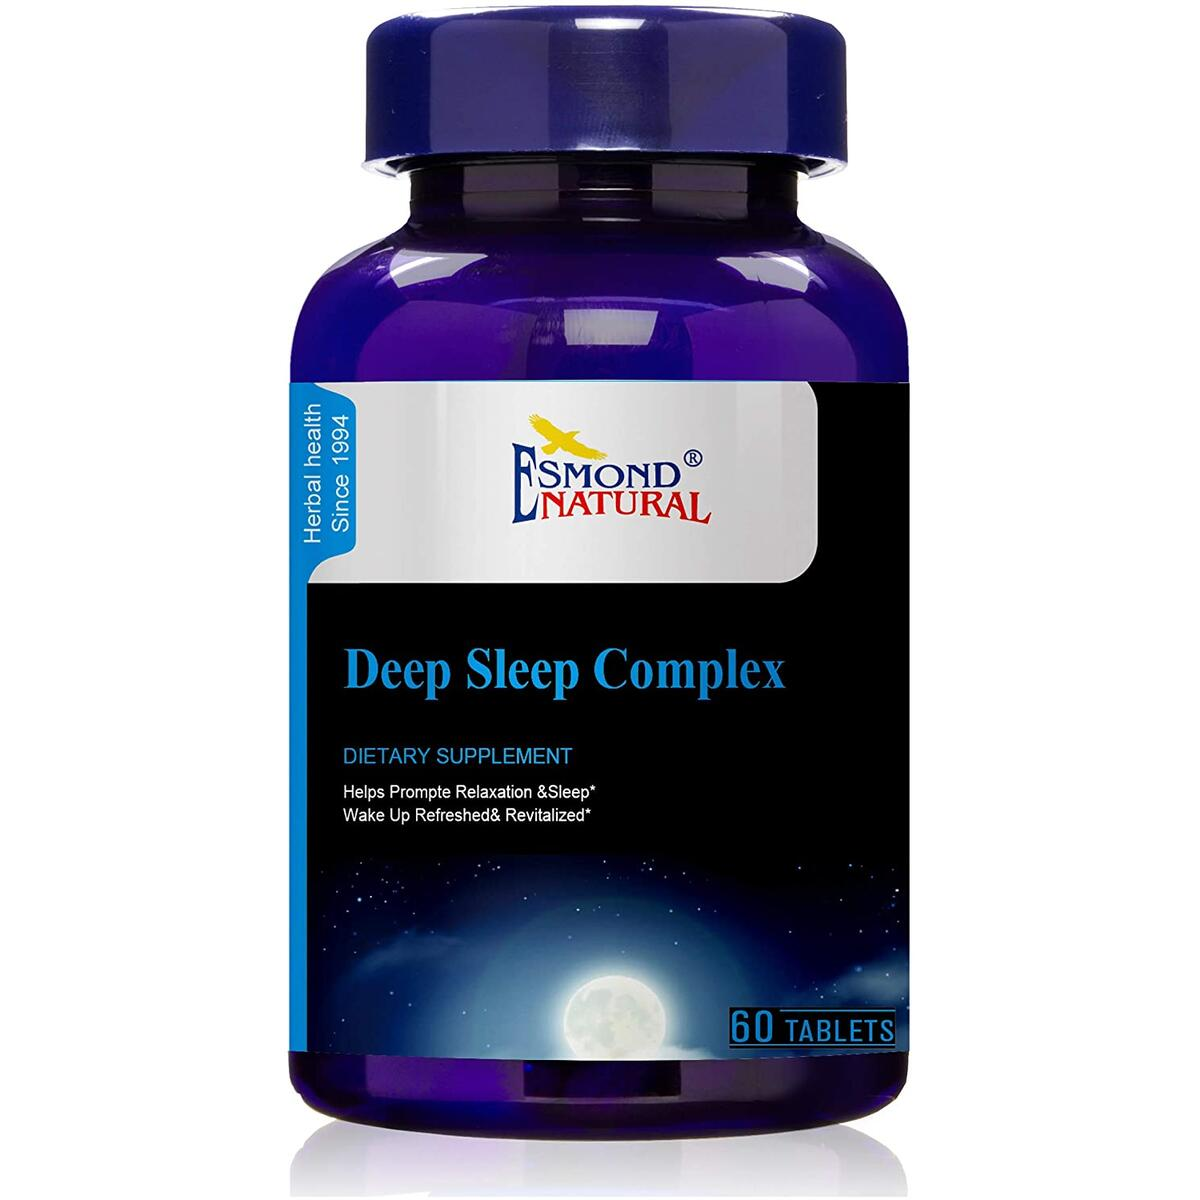 Esmond Natural: Deep Sleep Complex (Promotes Relaxation & Sleep), GMP, Natural Product Assn Certified, Made in USA-60 Tablets